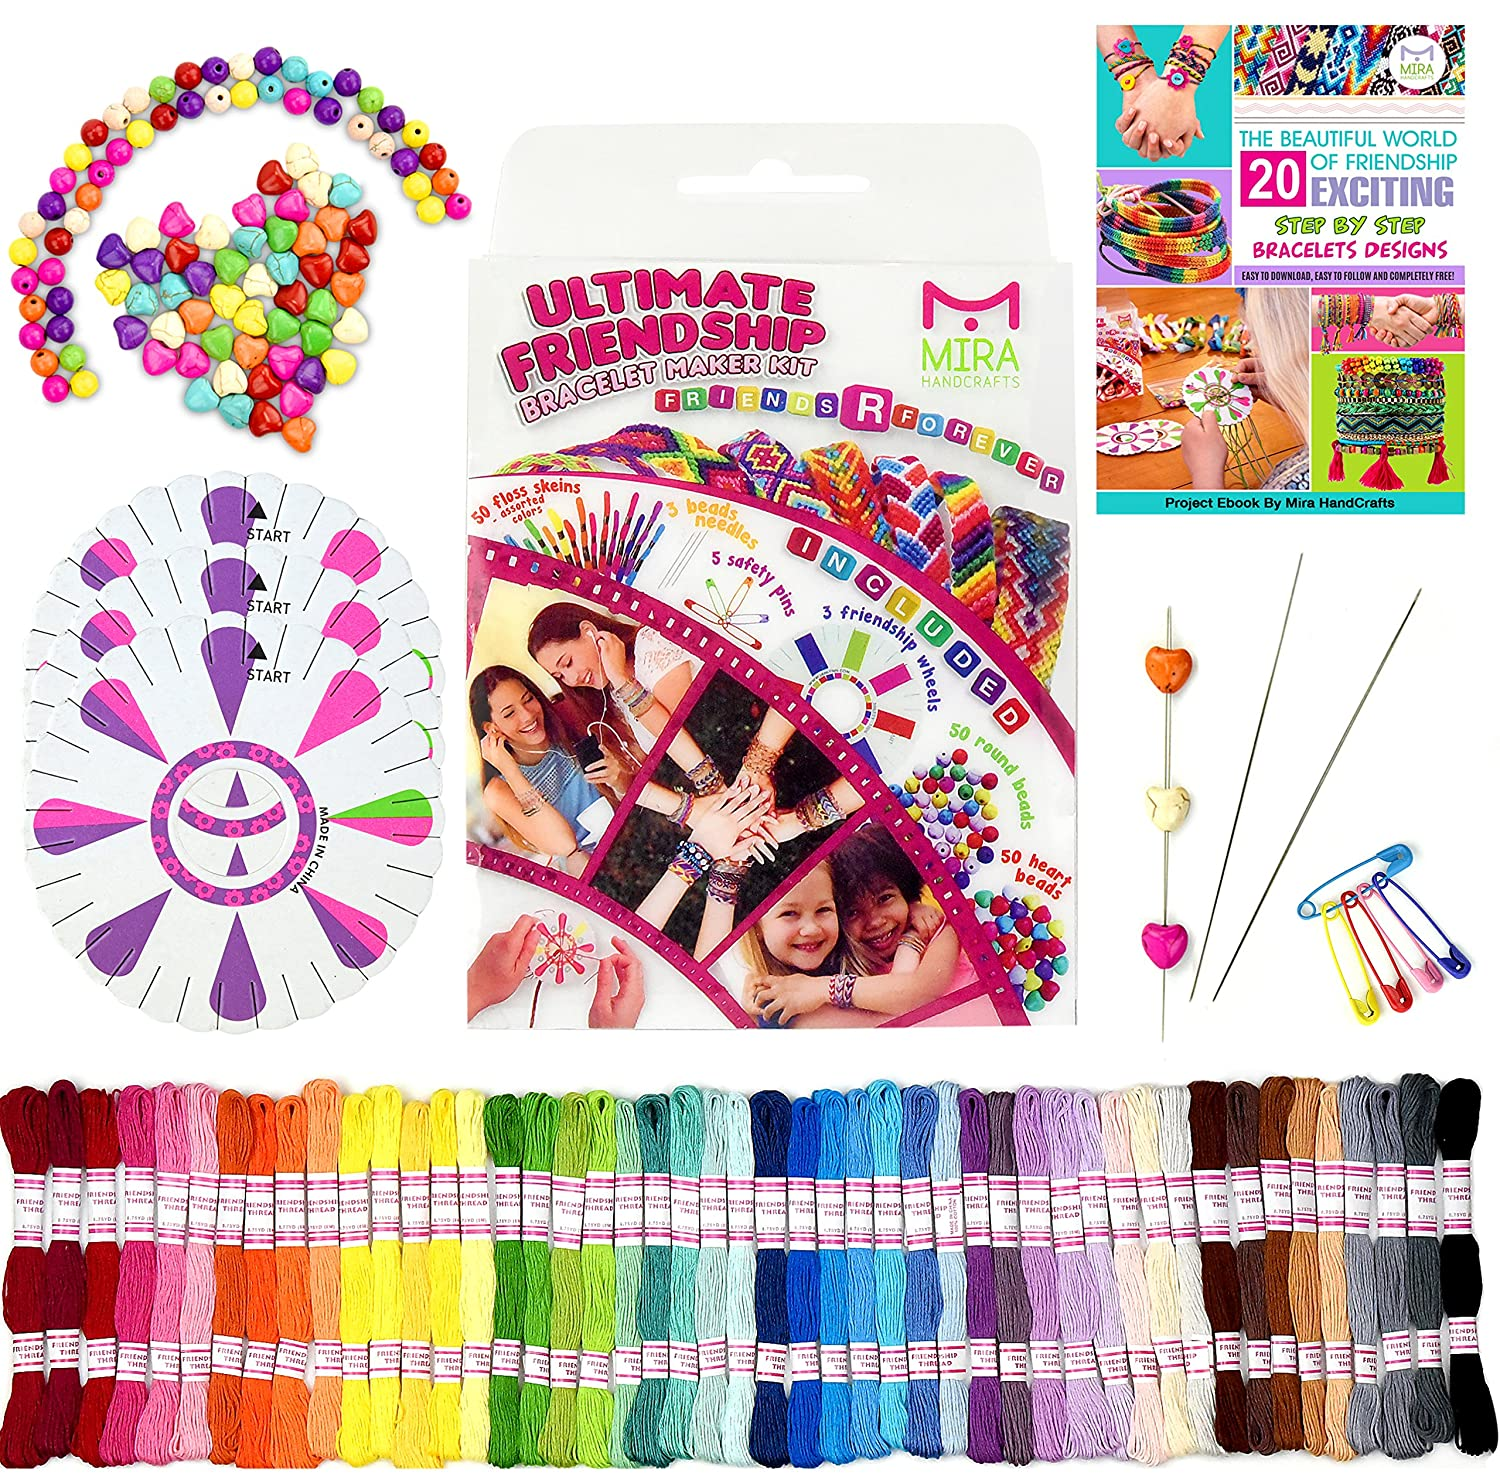 Premium Friendship Bracelet Maker - Large 161 Piece Bracelet/Jewelry Making Kit - Best Birthday/Christmas Gifts - 20 Bracelets Patterns E-Book DIY for Kids Miragoods